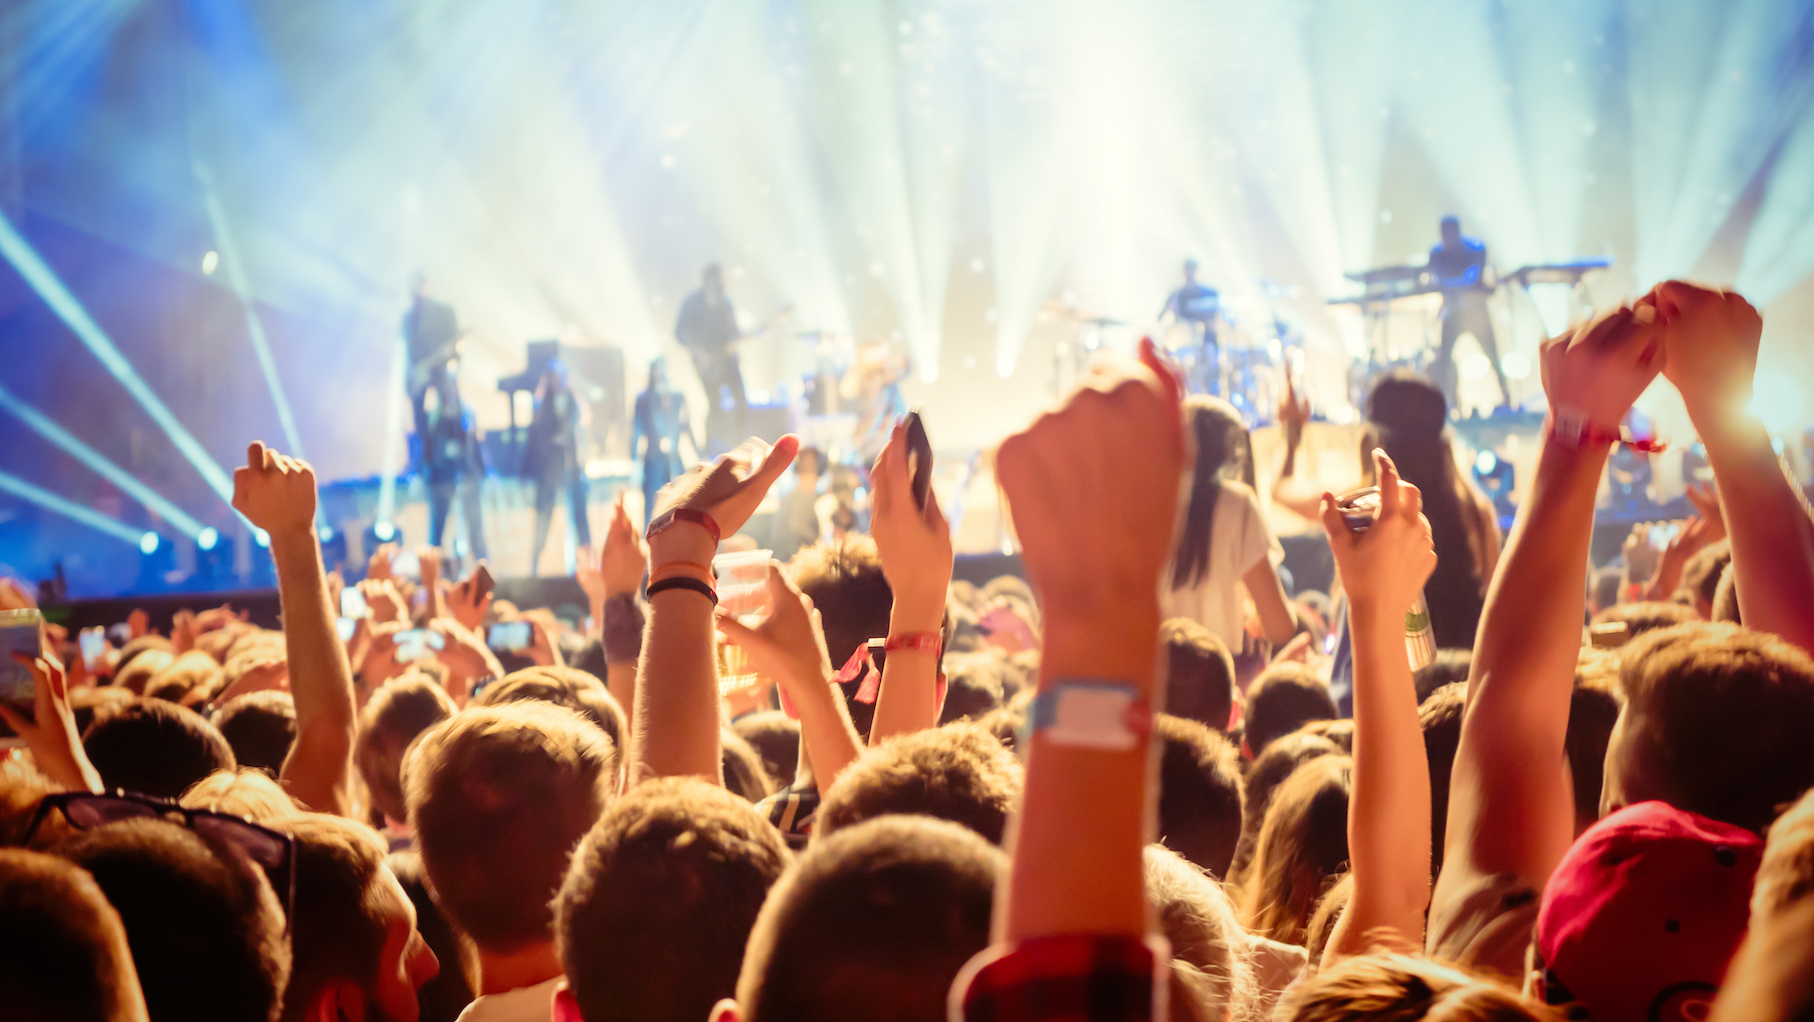 According to new research from experts at the University Medical Center Utrecht in the Netherlands, music fans should take precautions to prevent hearing damage at music festivals.